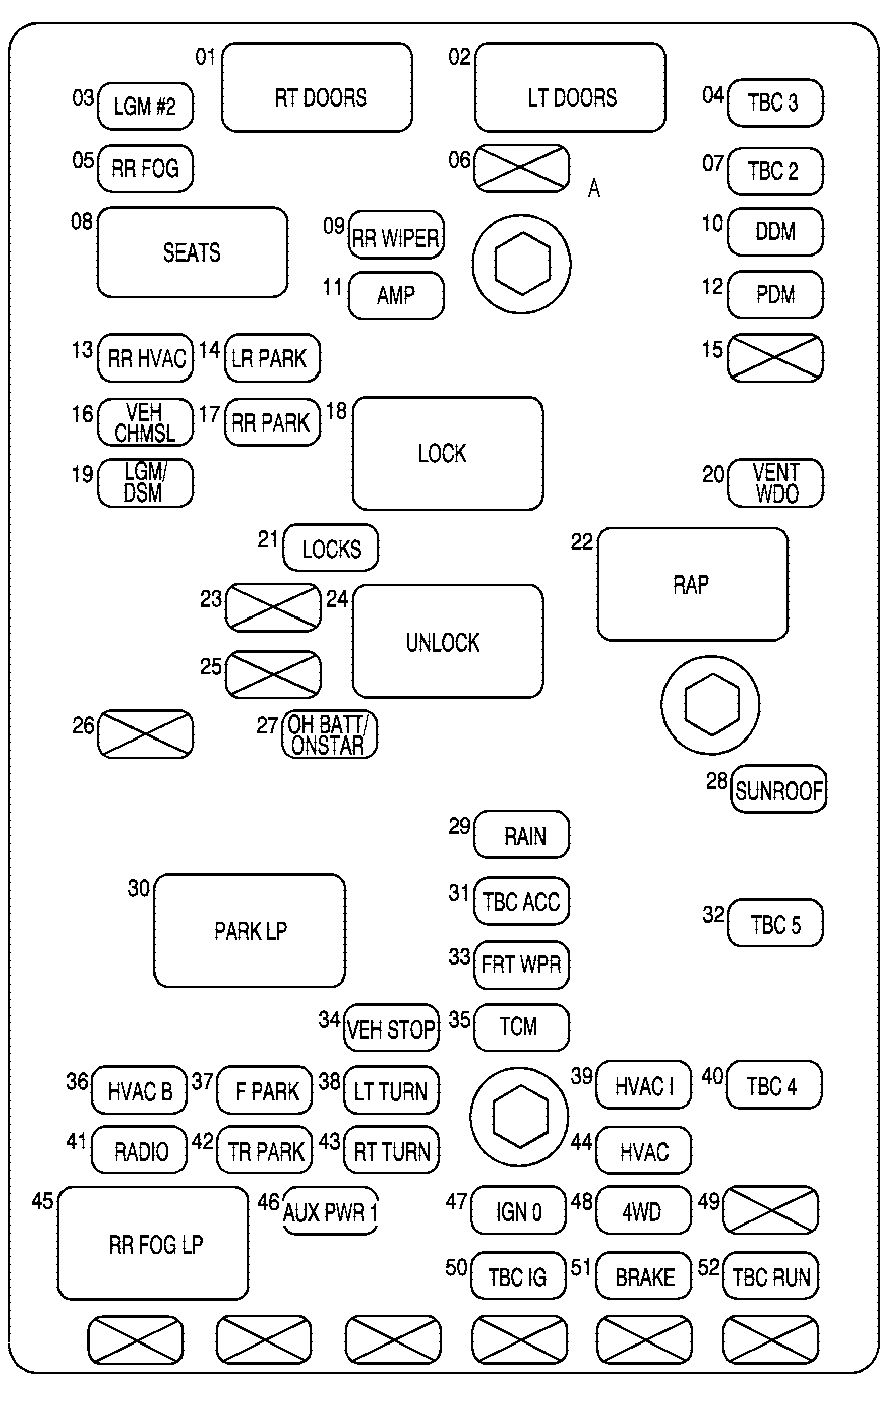 Fuse Box Diagram 2007 Hyundai Accent Wiring Diagrams For Dummies Entourage 2002 Xg350 Rh 20 Kunstvorort Waltrop De